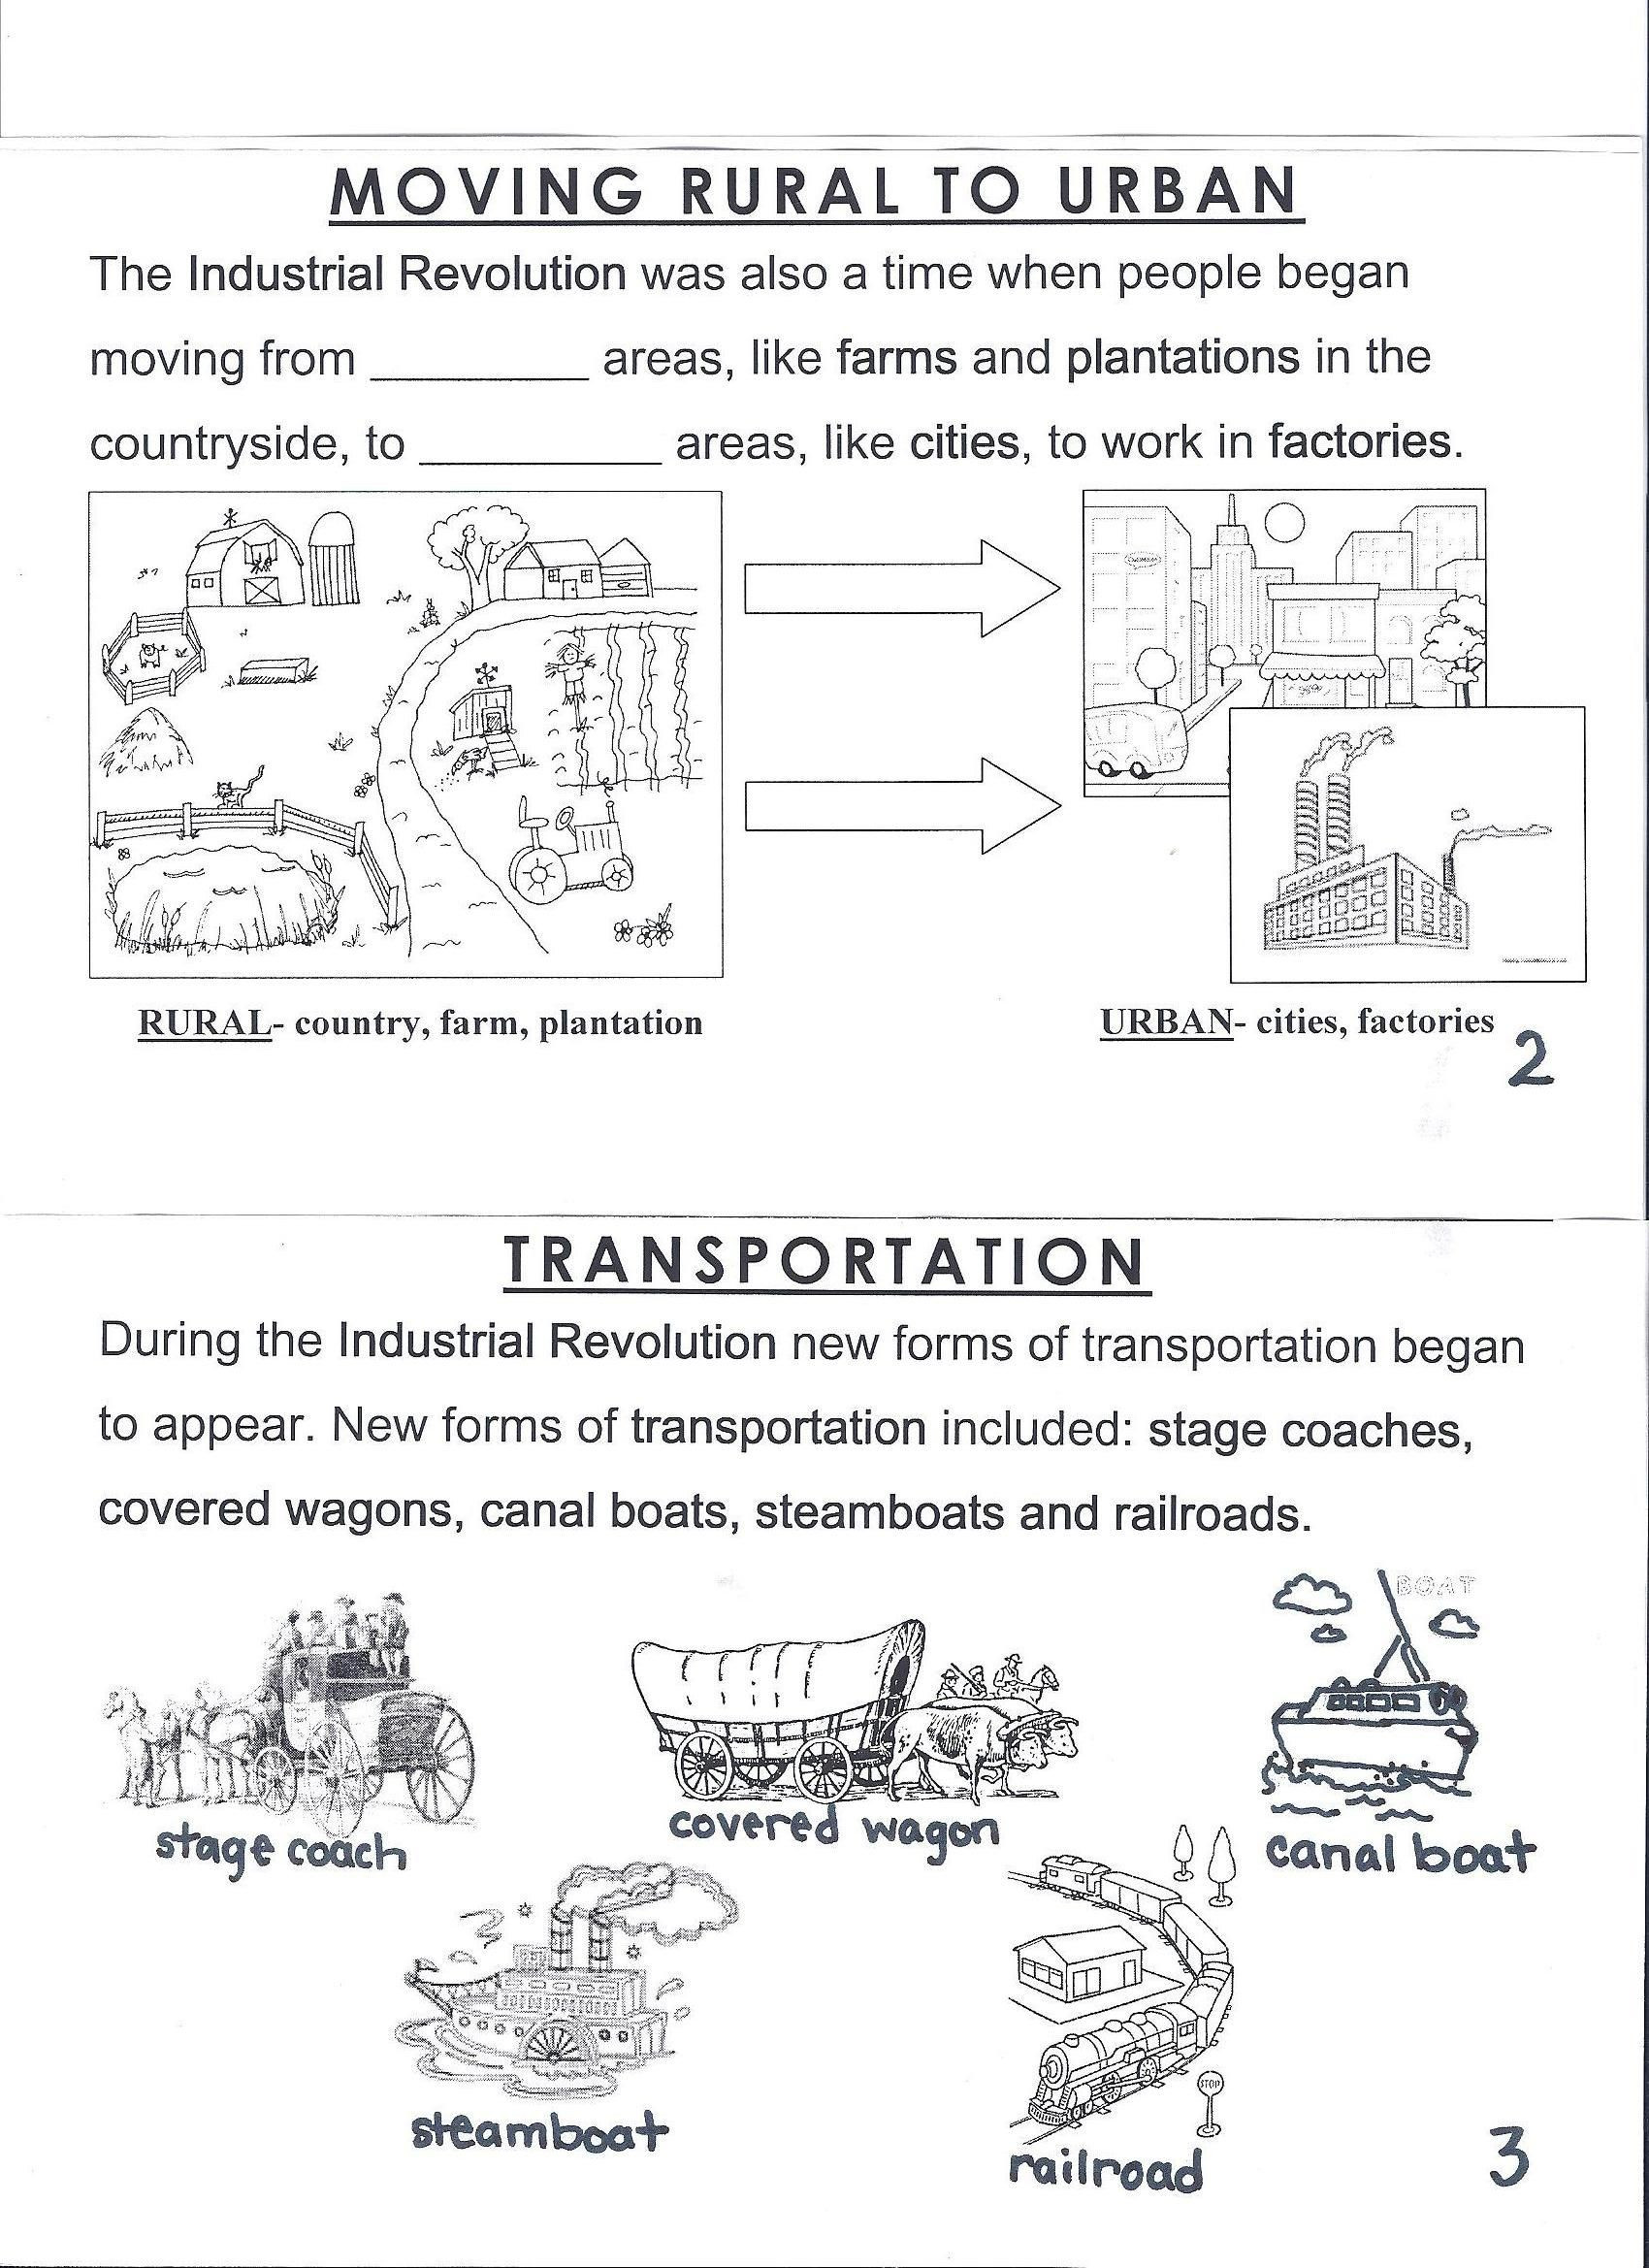 Landforms Worksheets for 5th Grade Industrial Revolution 2 1 700—2 338 Pixels